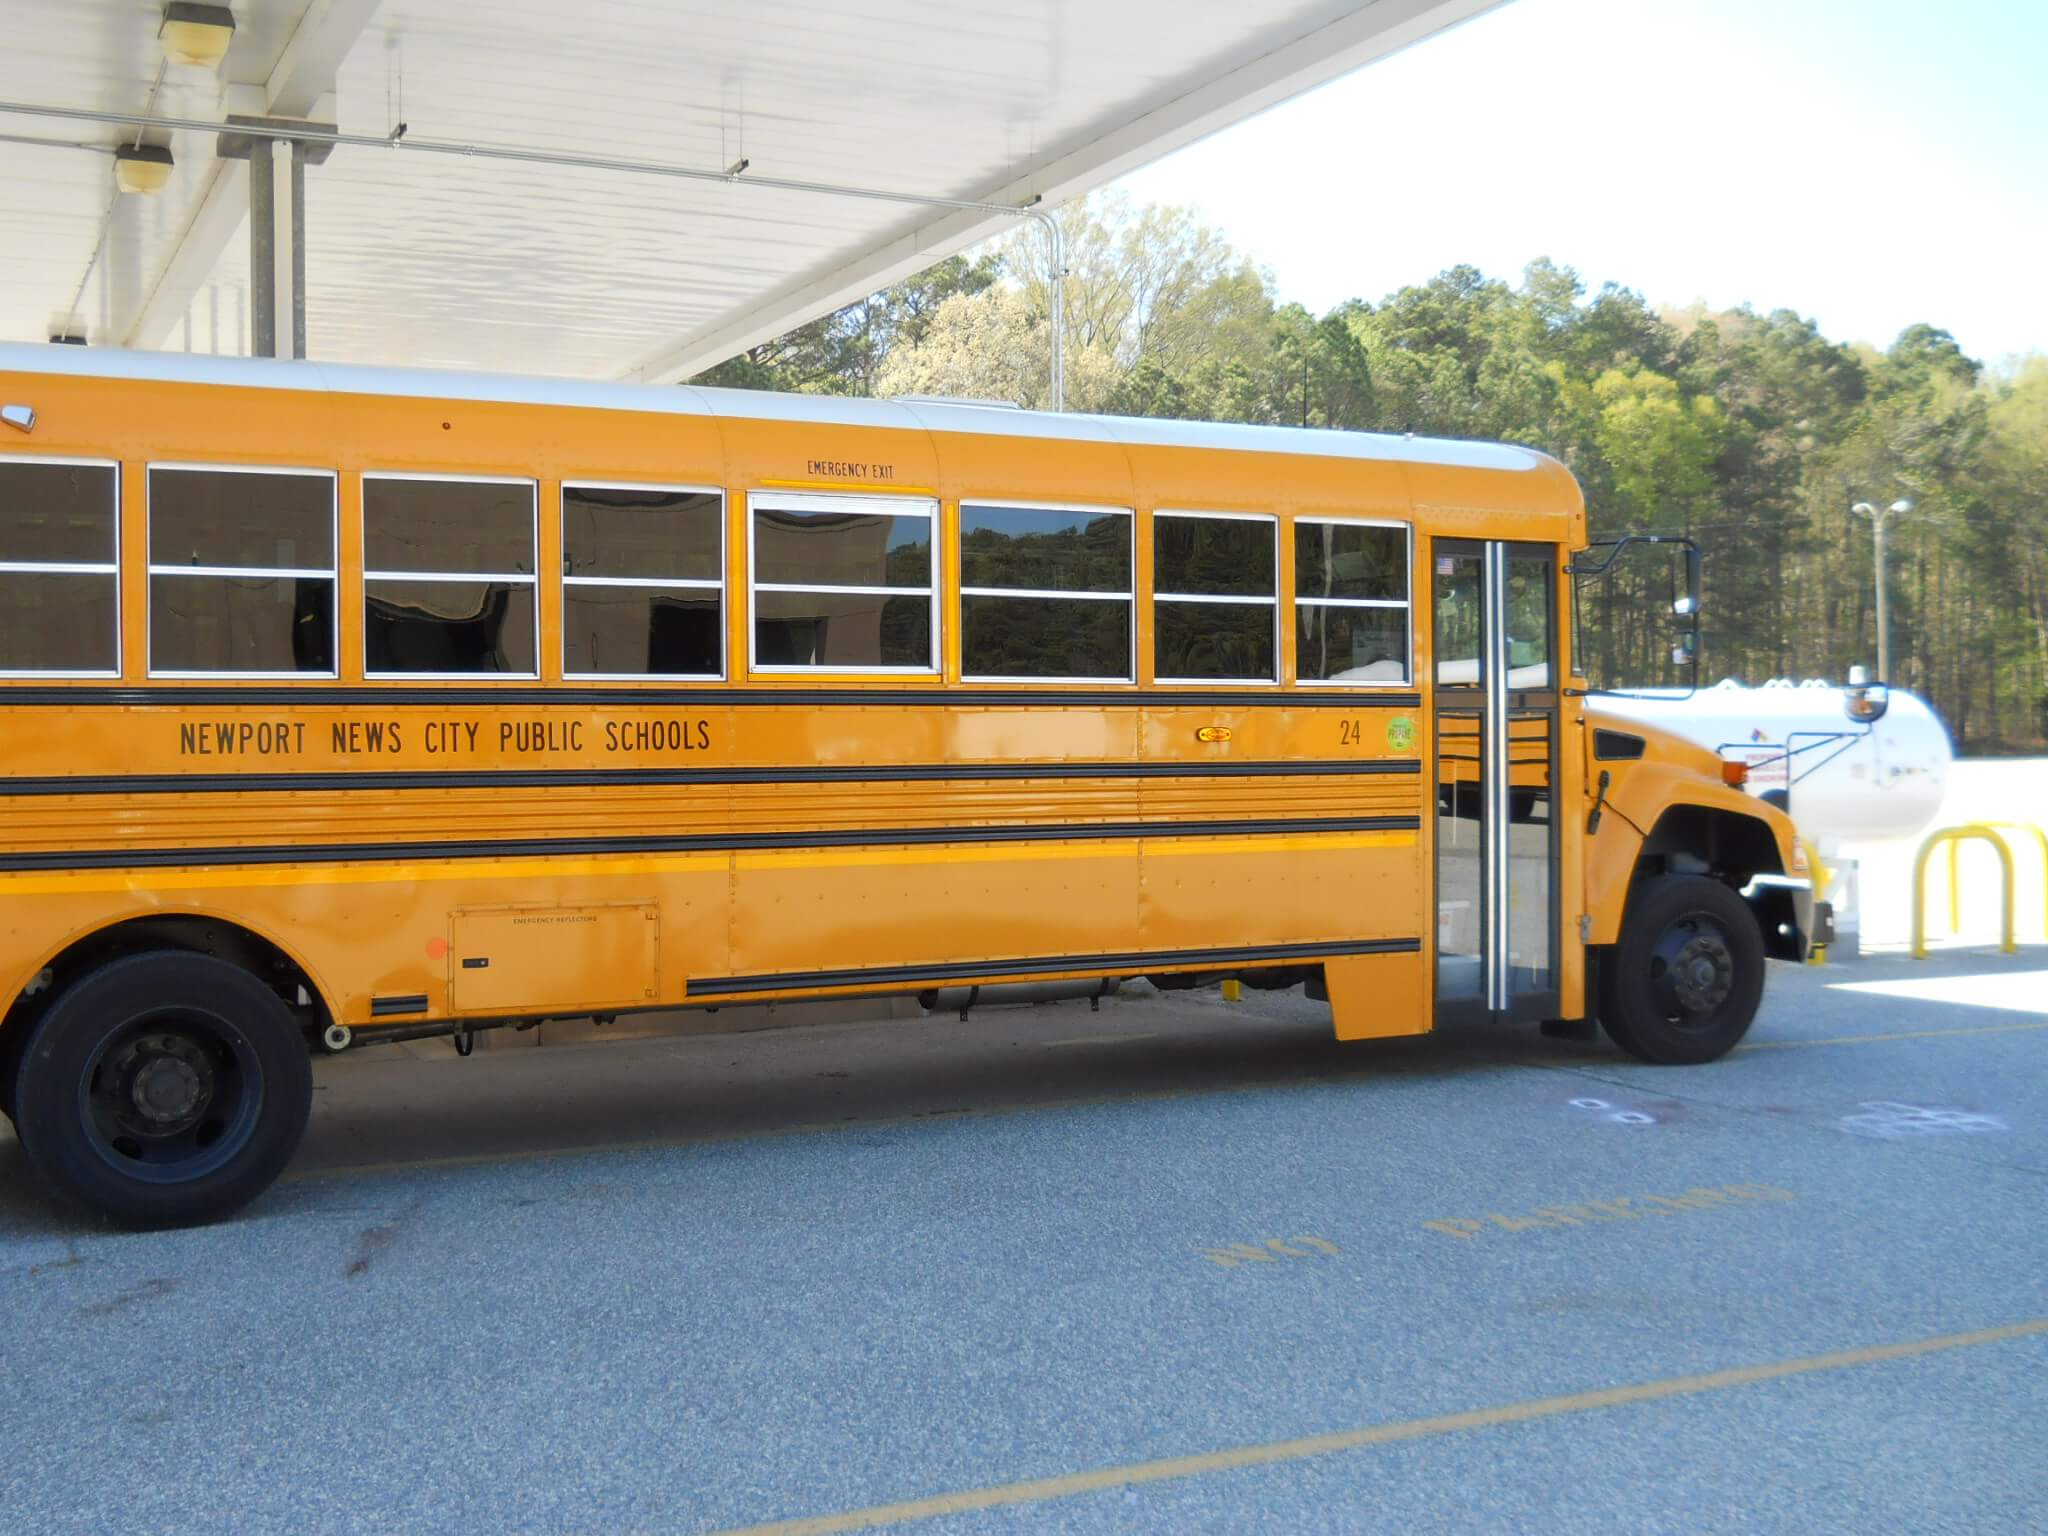 Blue Bird Bus >> Va. School District Buys Two Dozen Propane-Powered Buses - NGT News